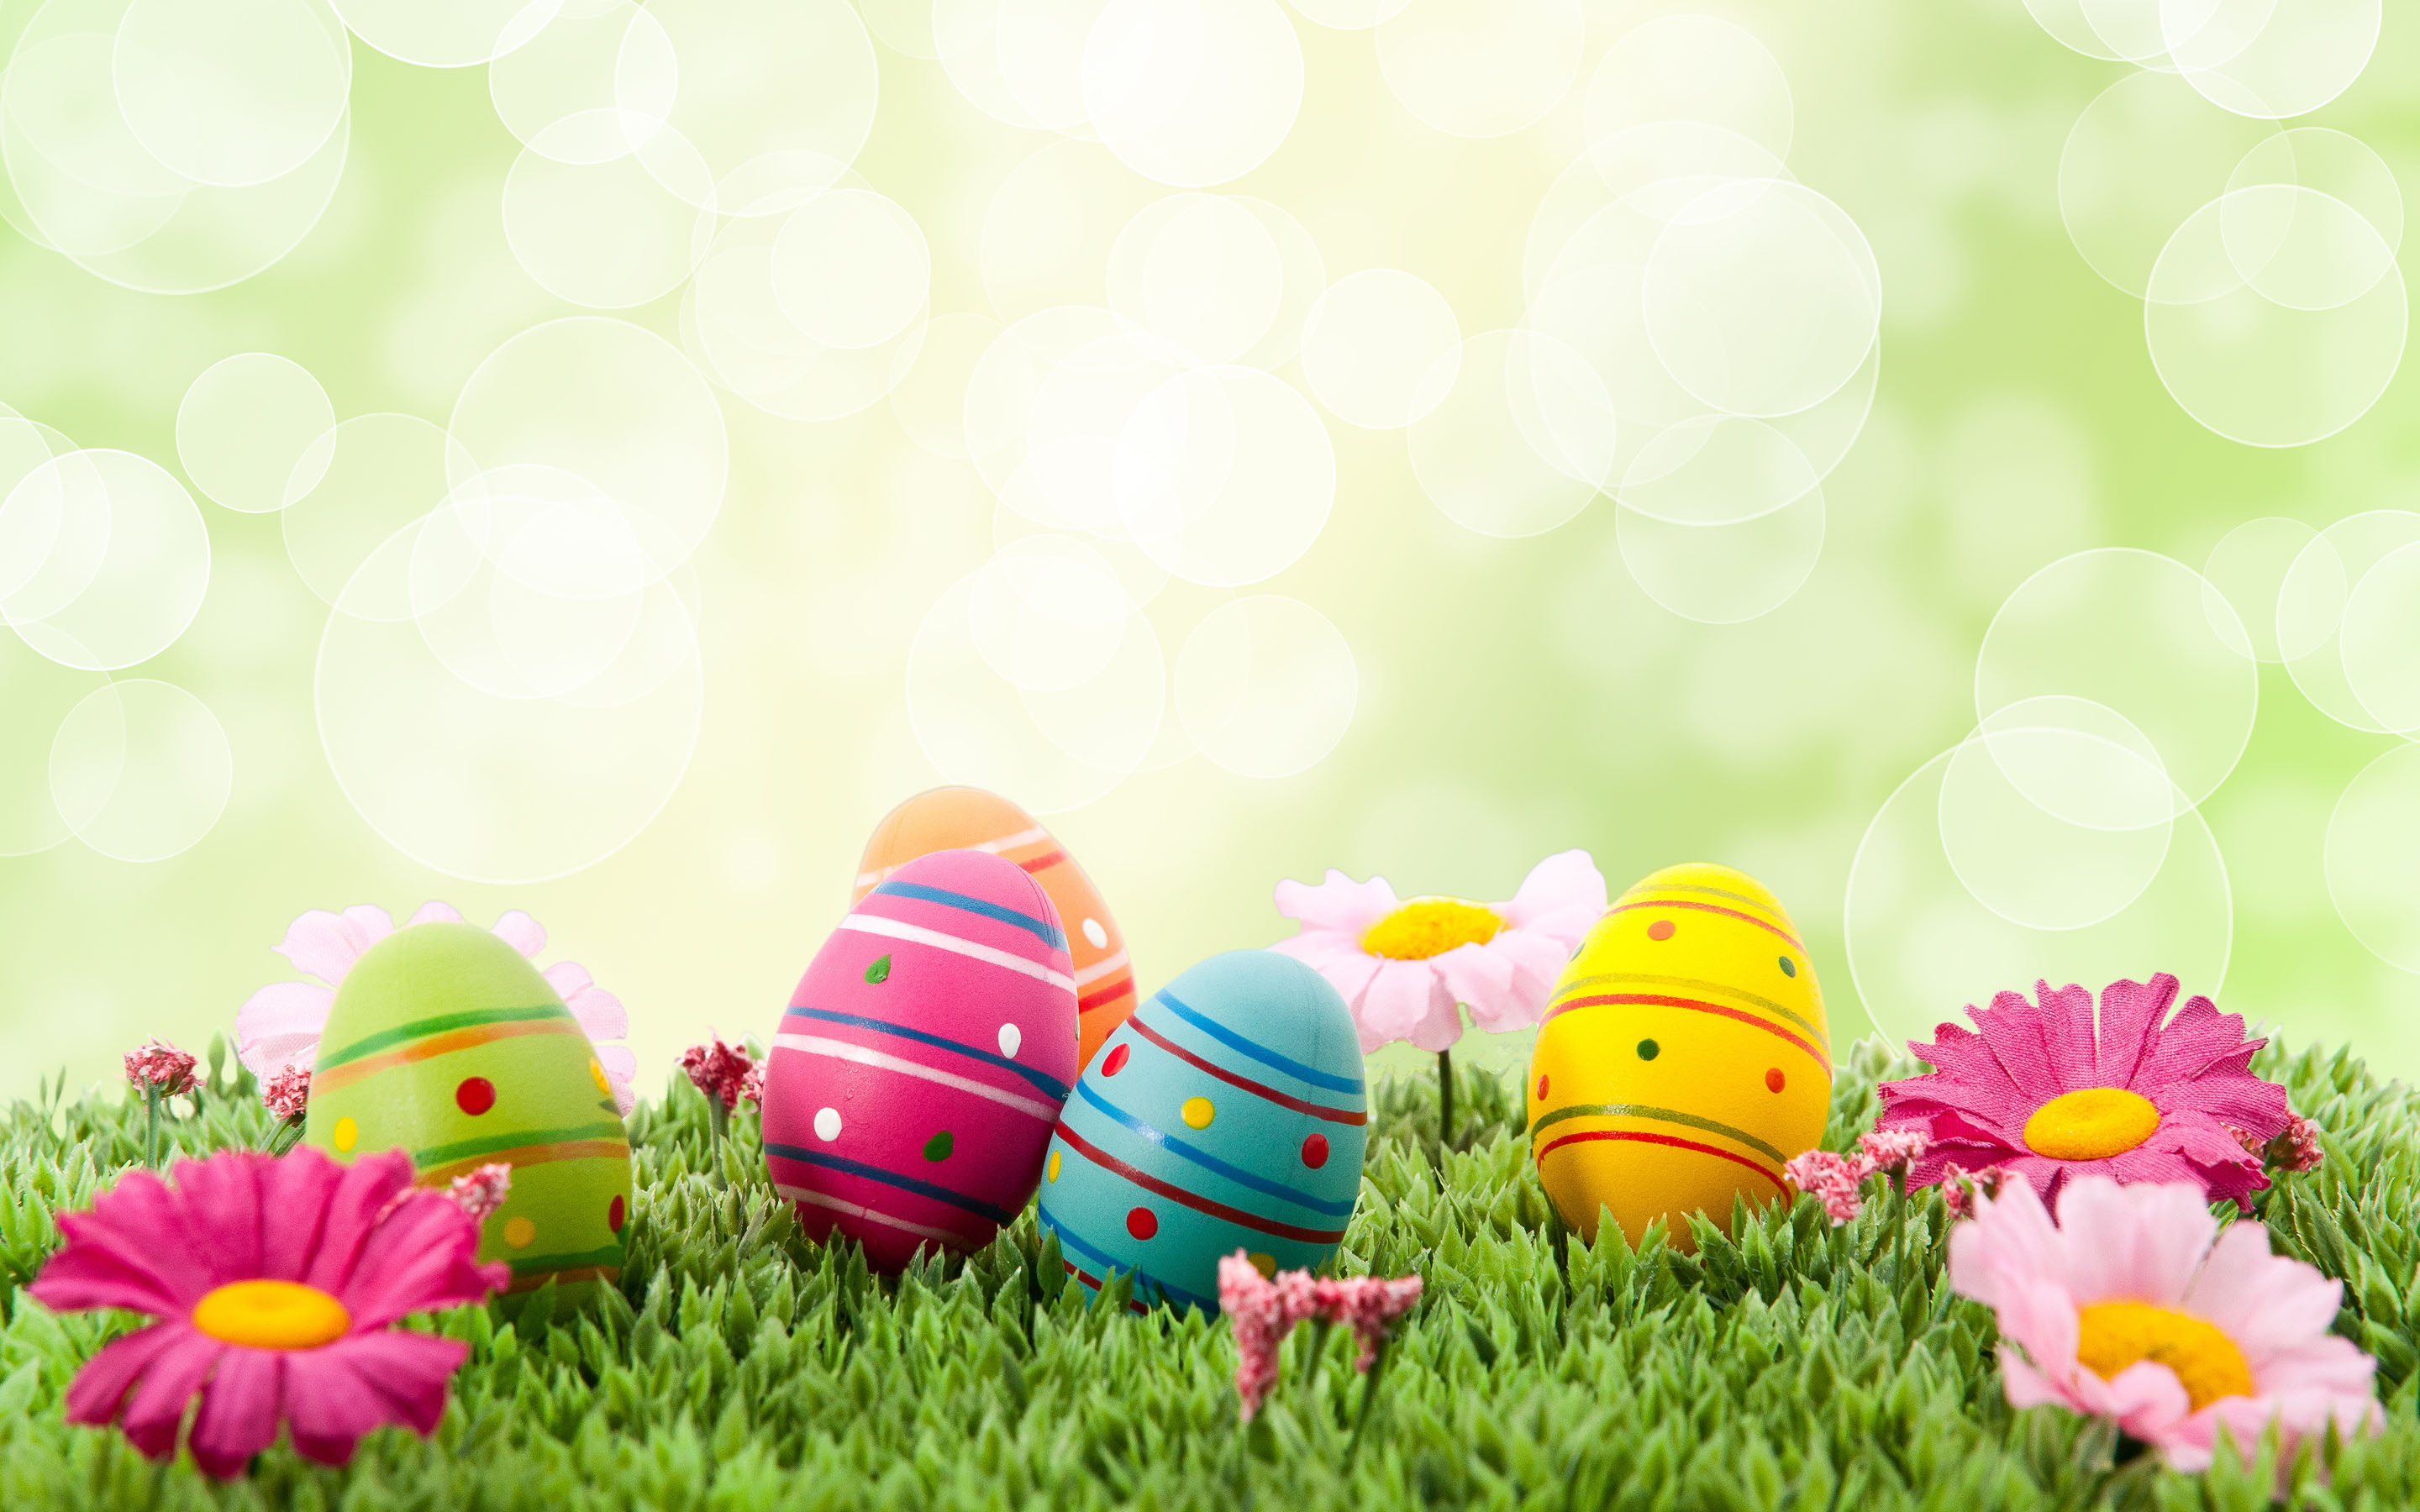 easter wallpapers hd - photo #38